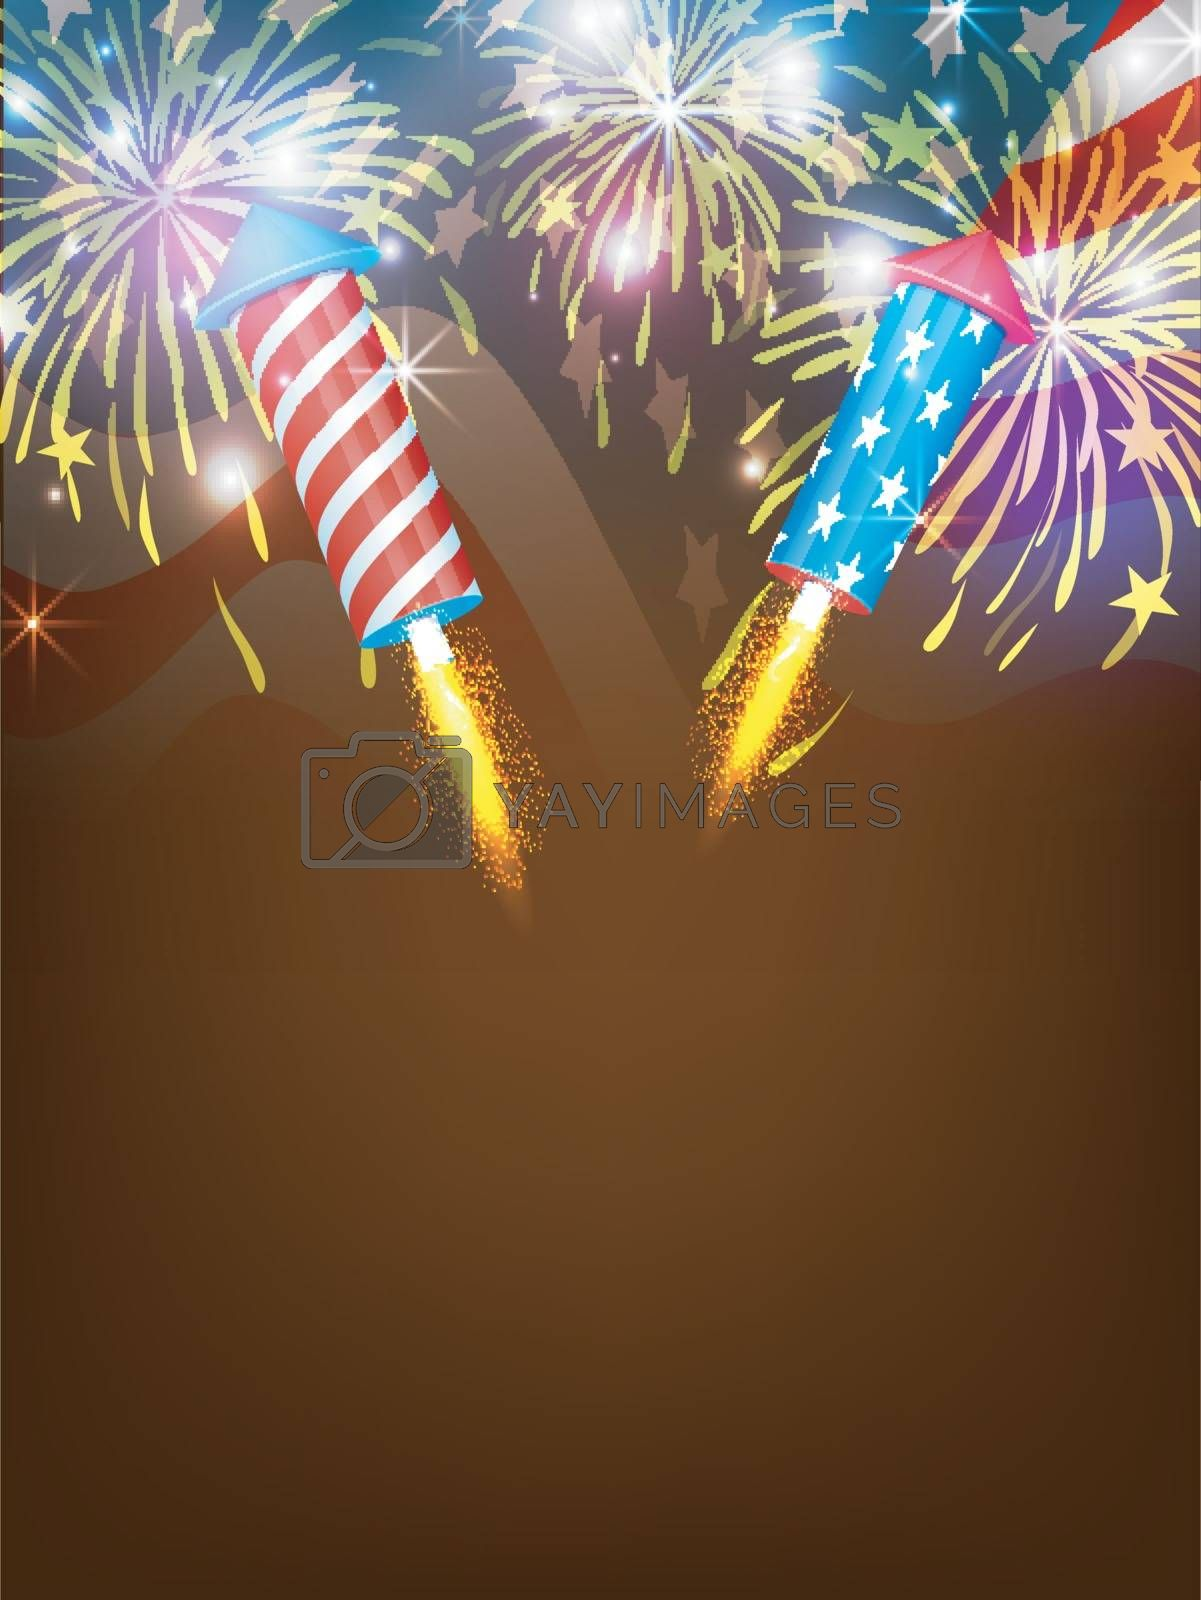 Sparkling fireworks explosion background with American Flag for 4th of July, Independence Day celebration.